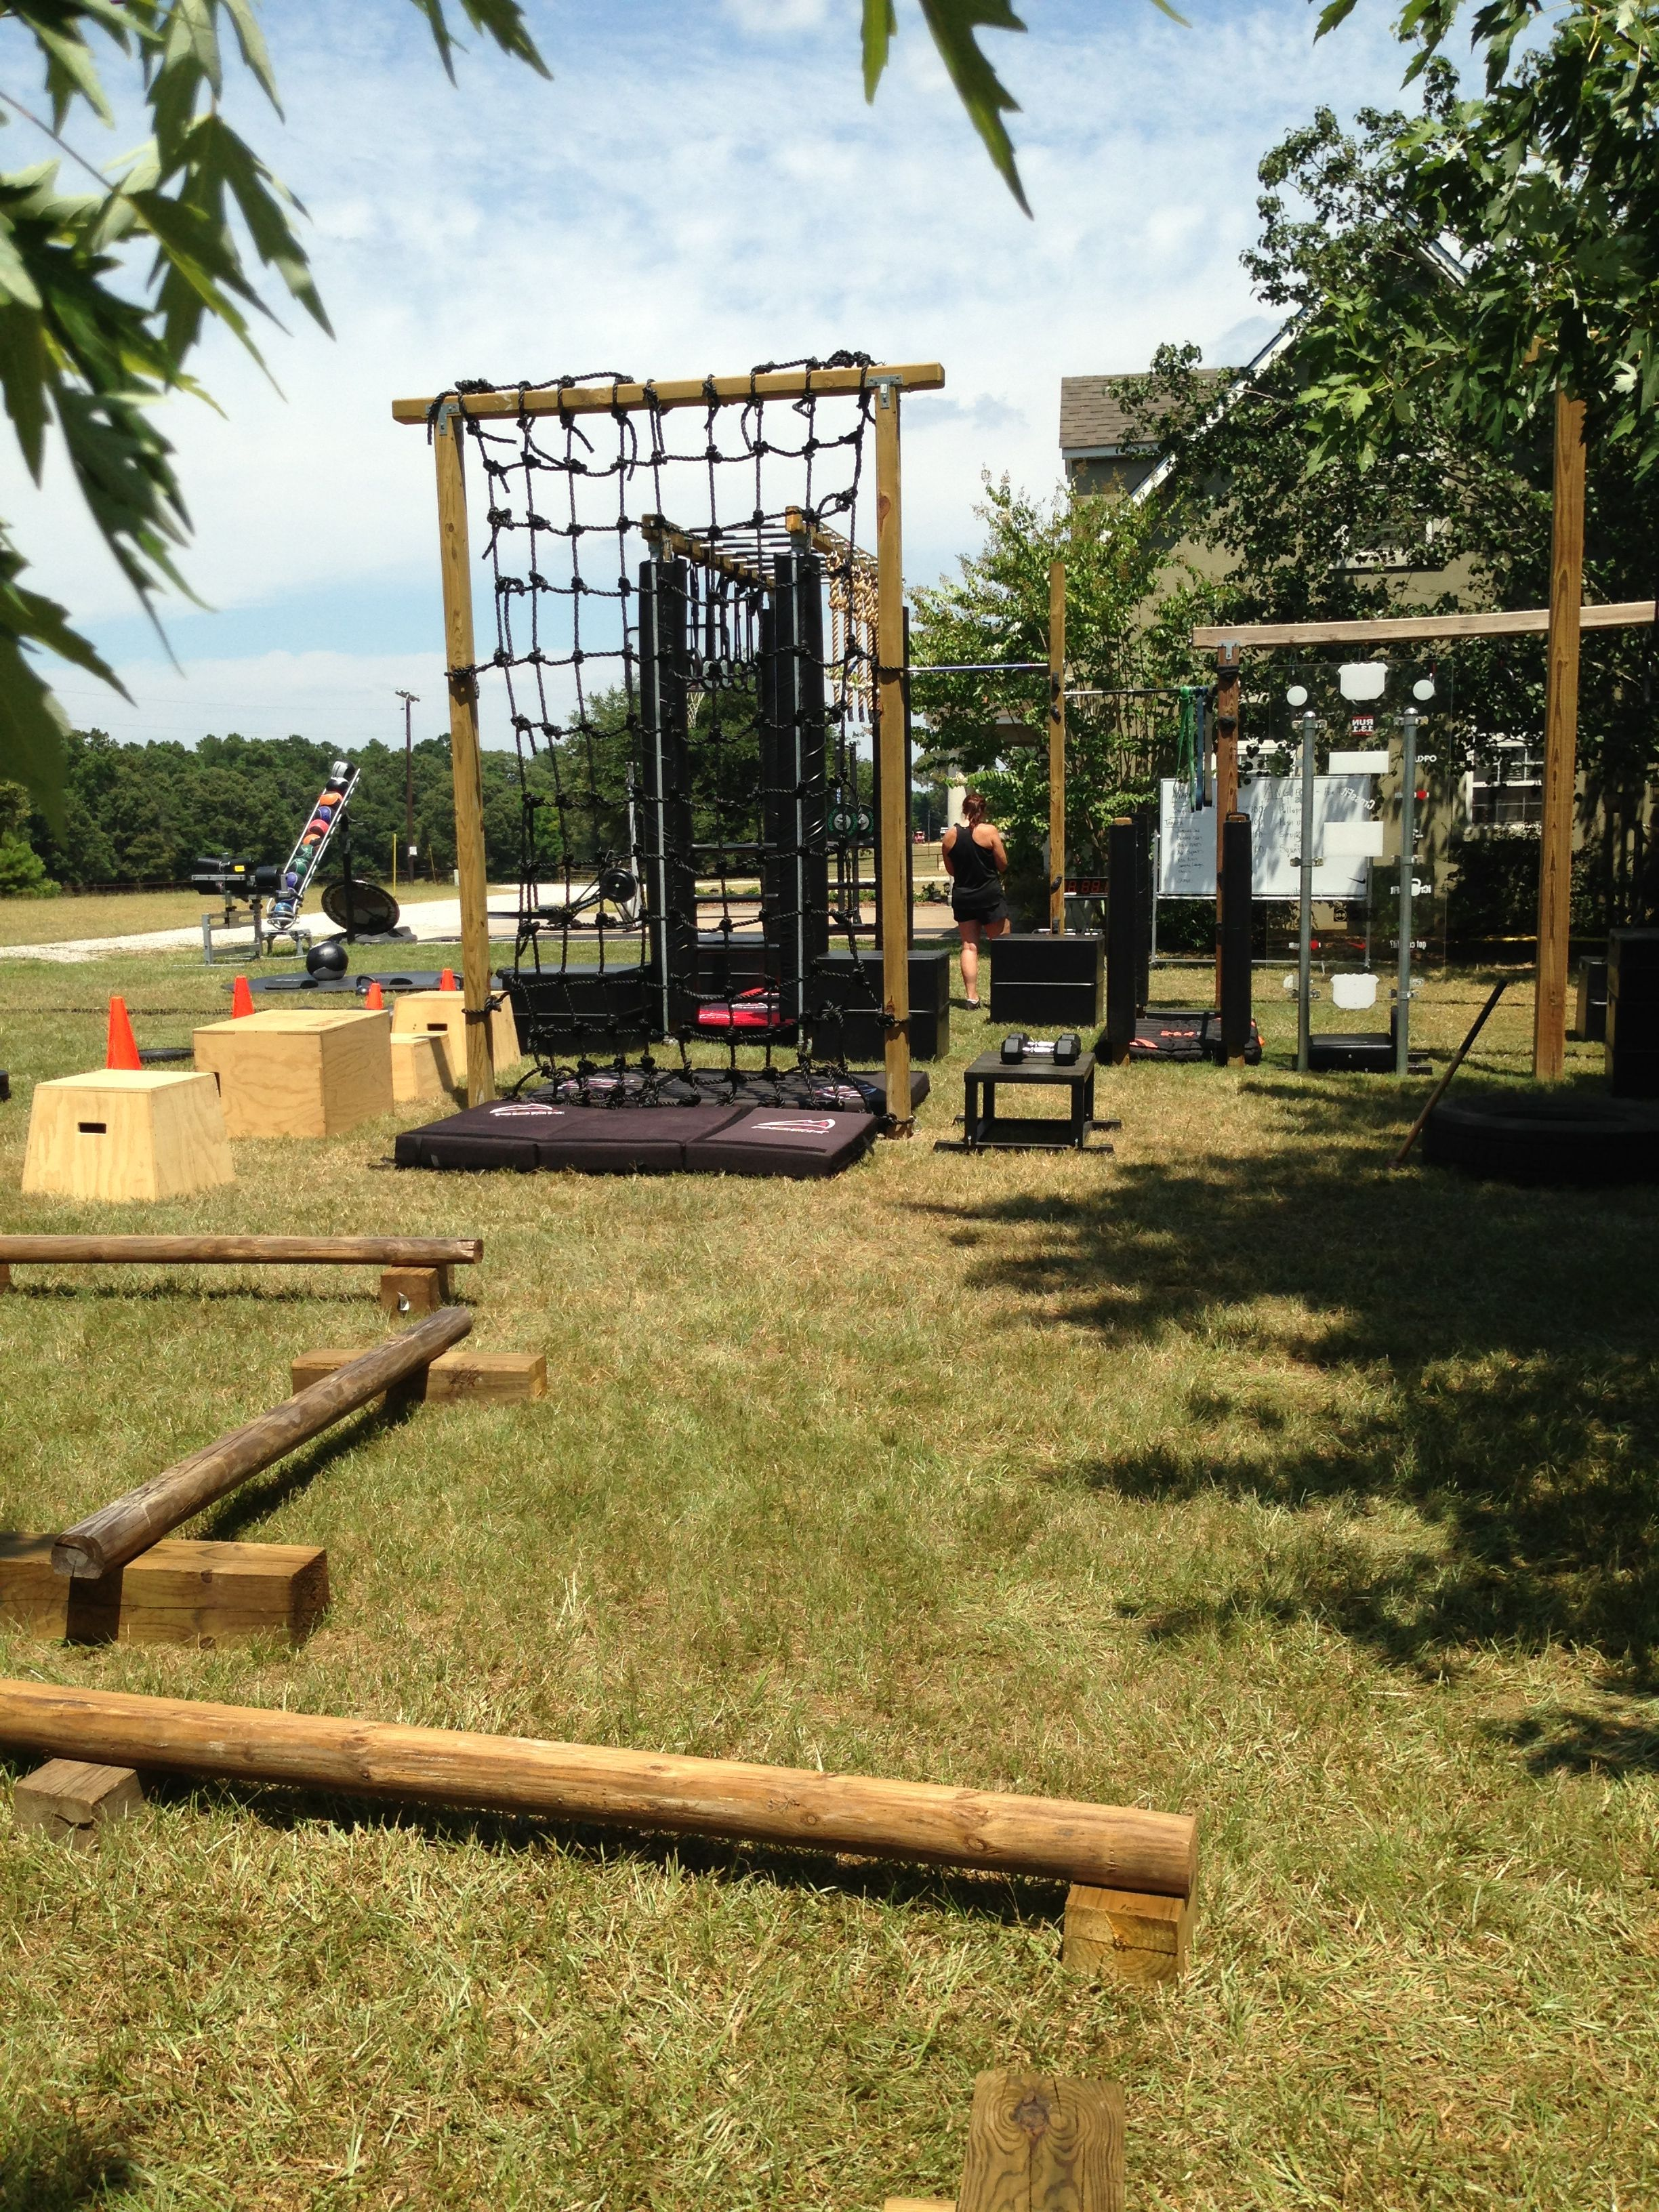 Obstacle course | Backyard obstacle course, Kids obstacle ...